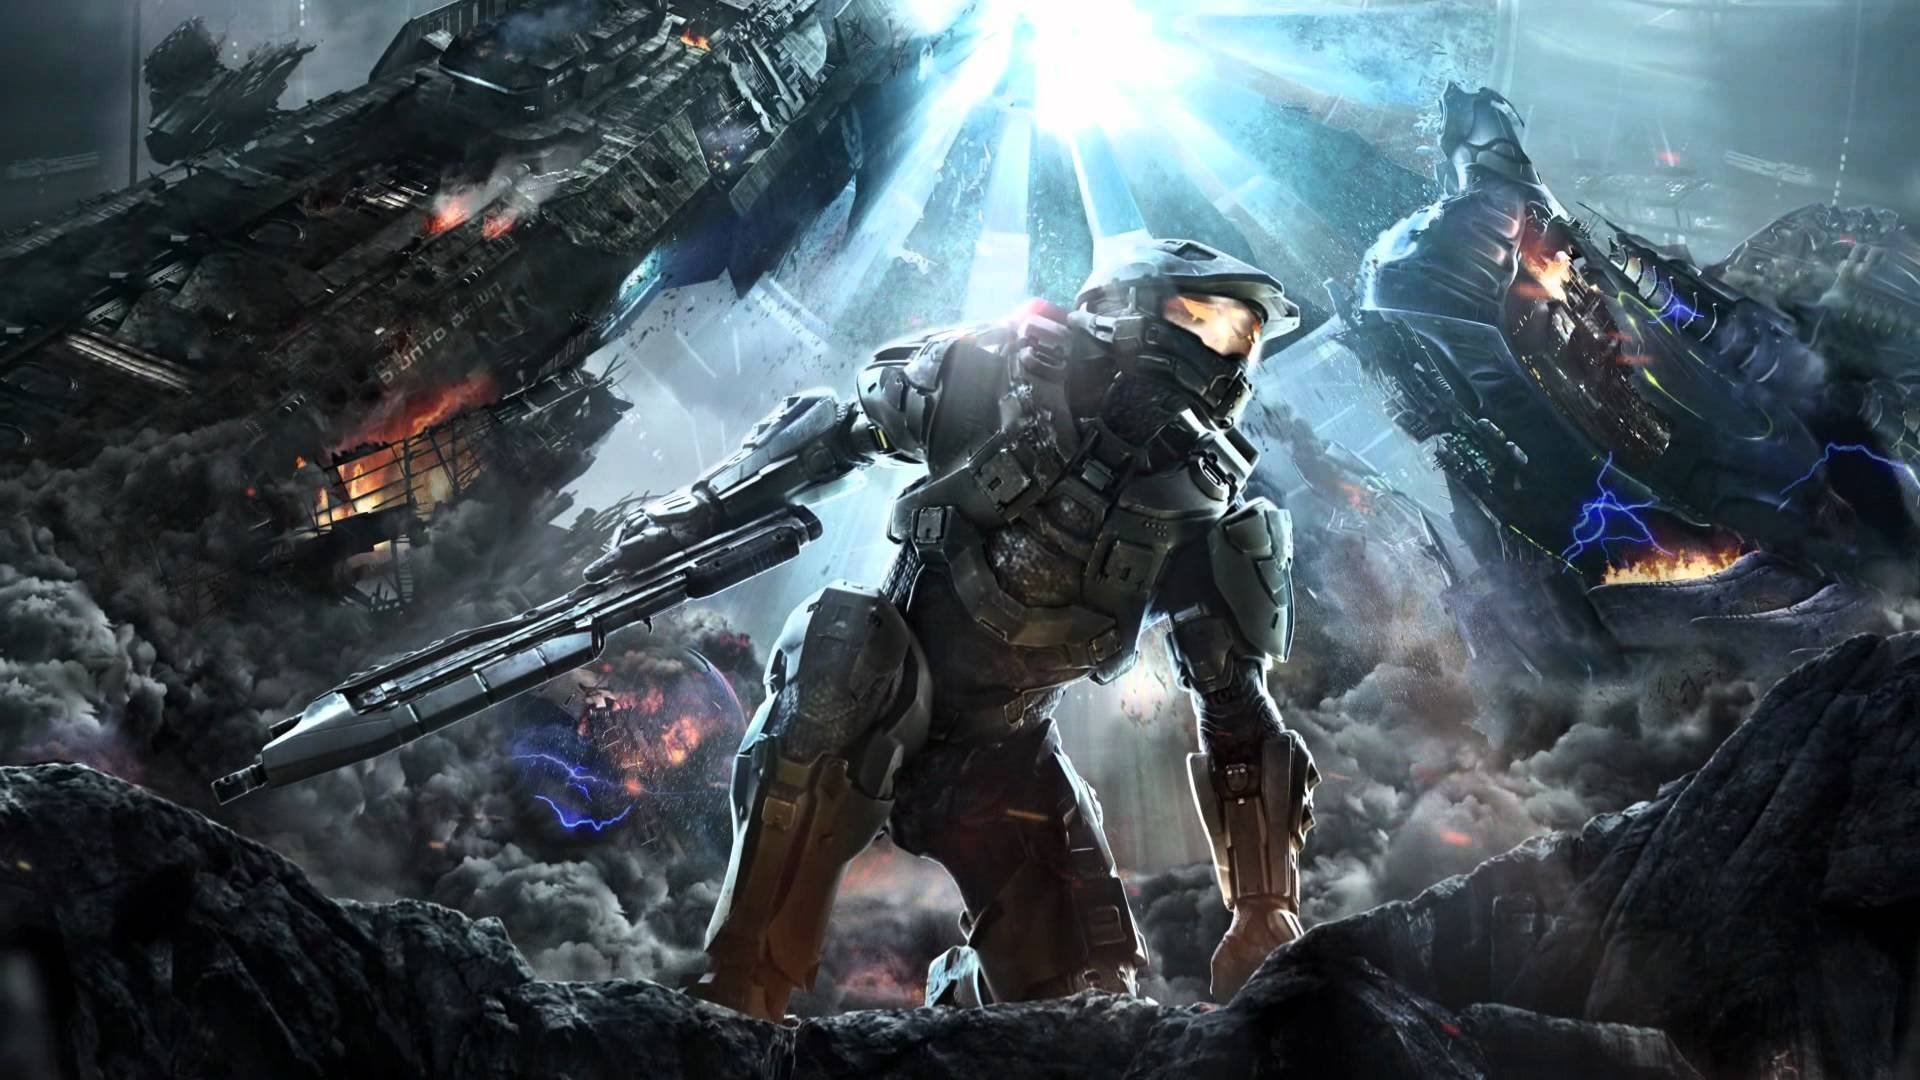 Halo five release date in Melbourne